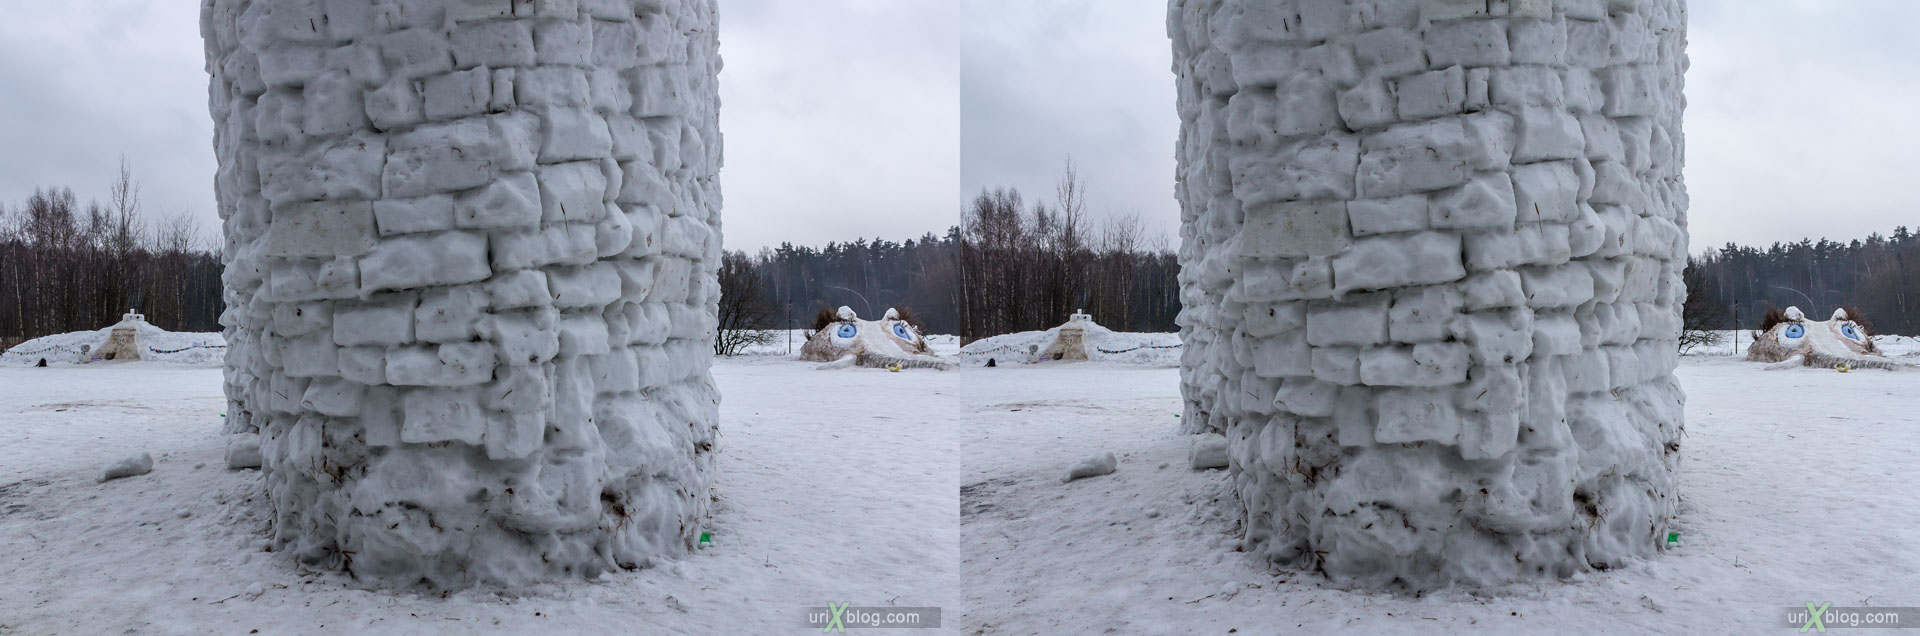 Bakshevskaja Maslenitsa, snowballs, fight, Khlyupino railway station, Moscow, Russia, 3D, stereo pair, cross-eyed, crossview, cross view stereo pair, stereoscopic, 2015